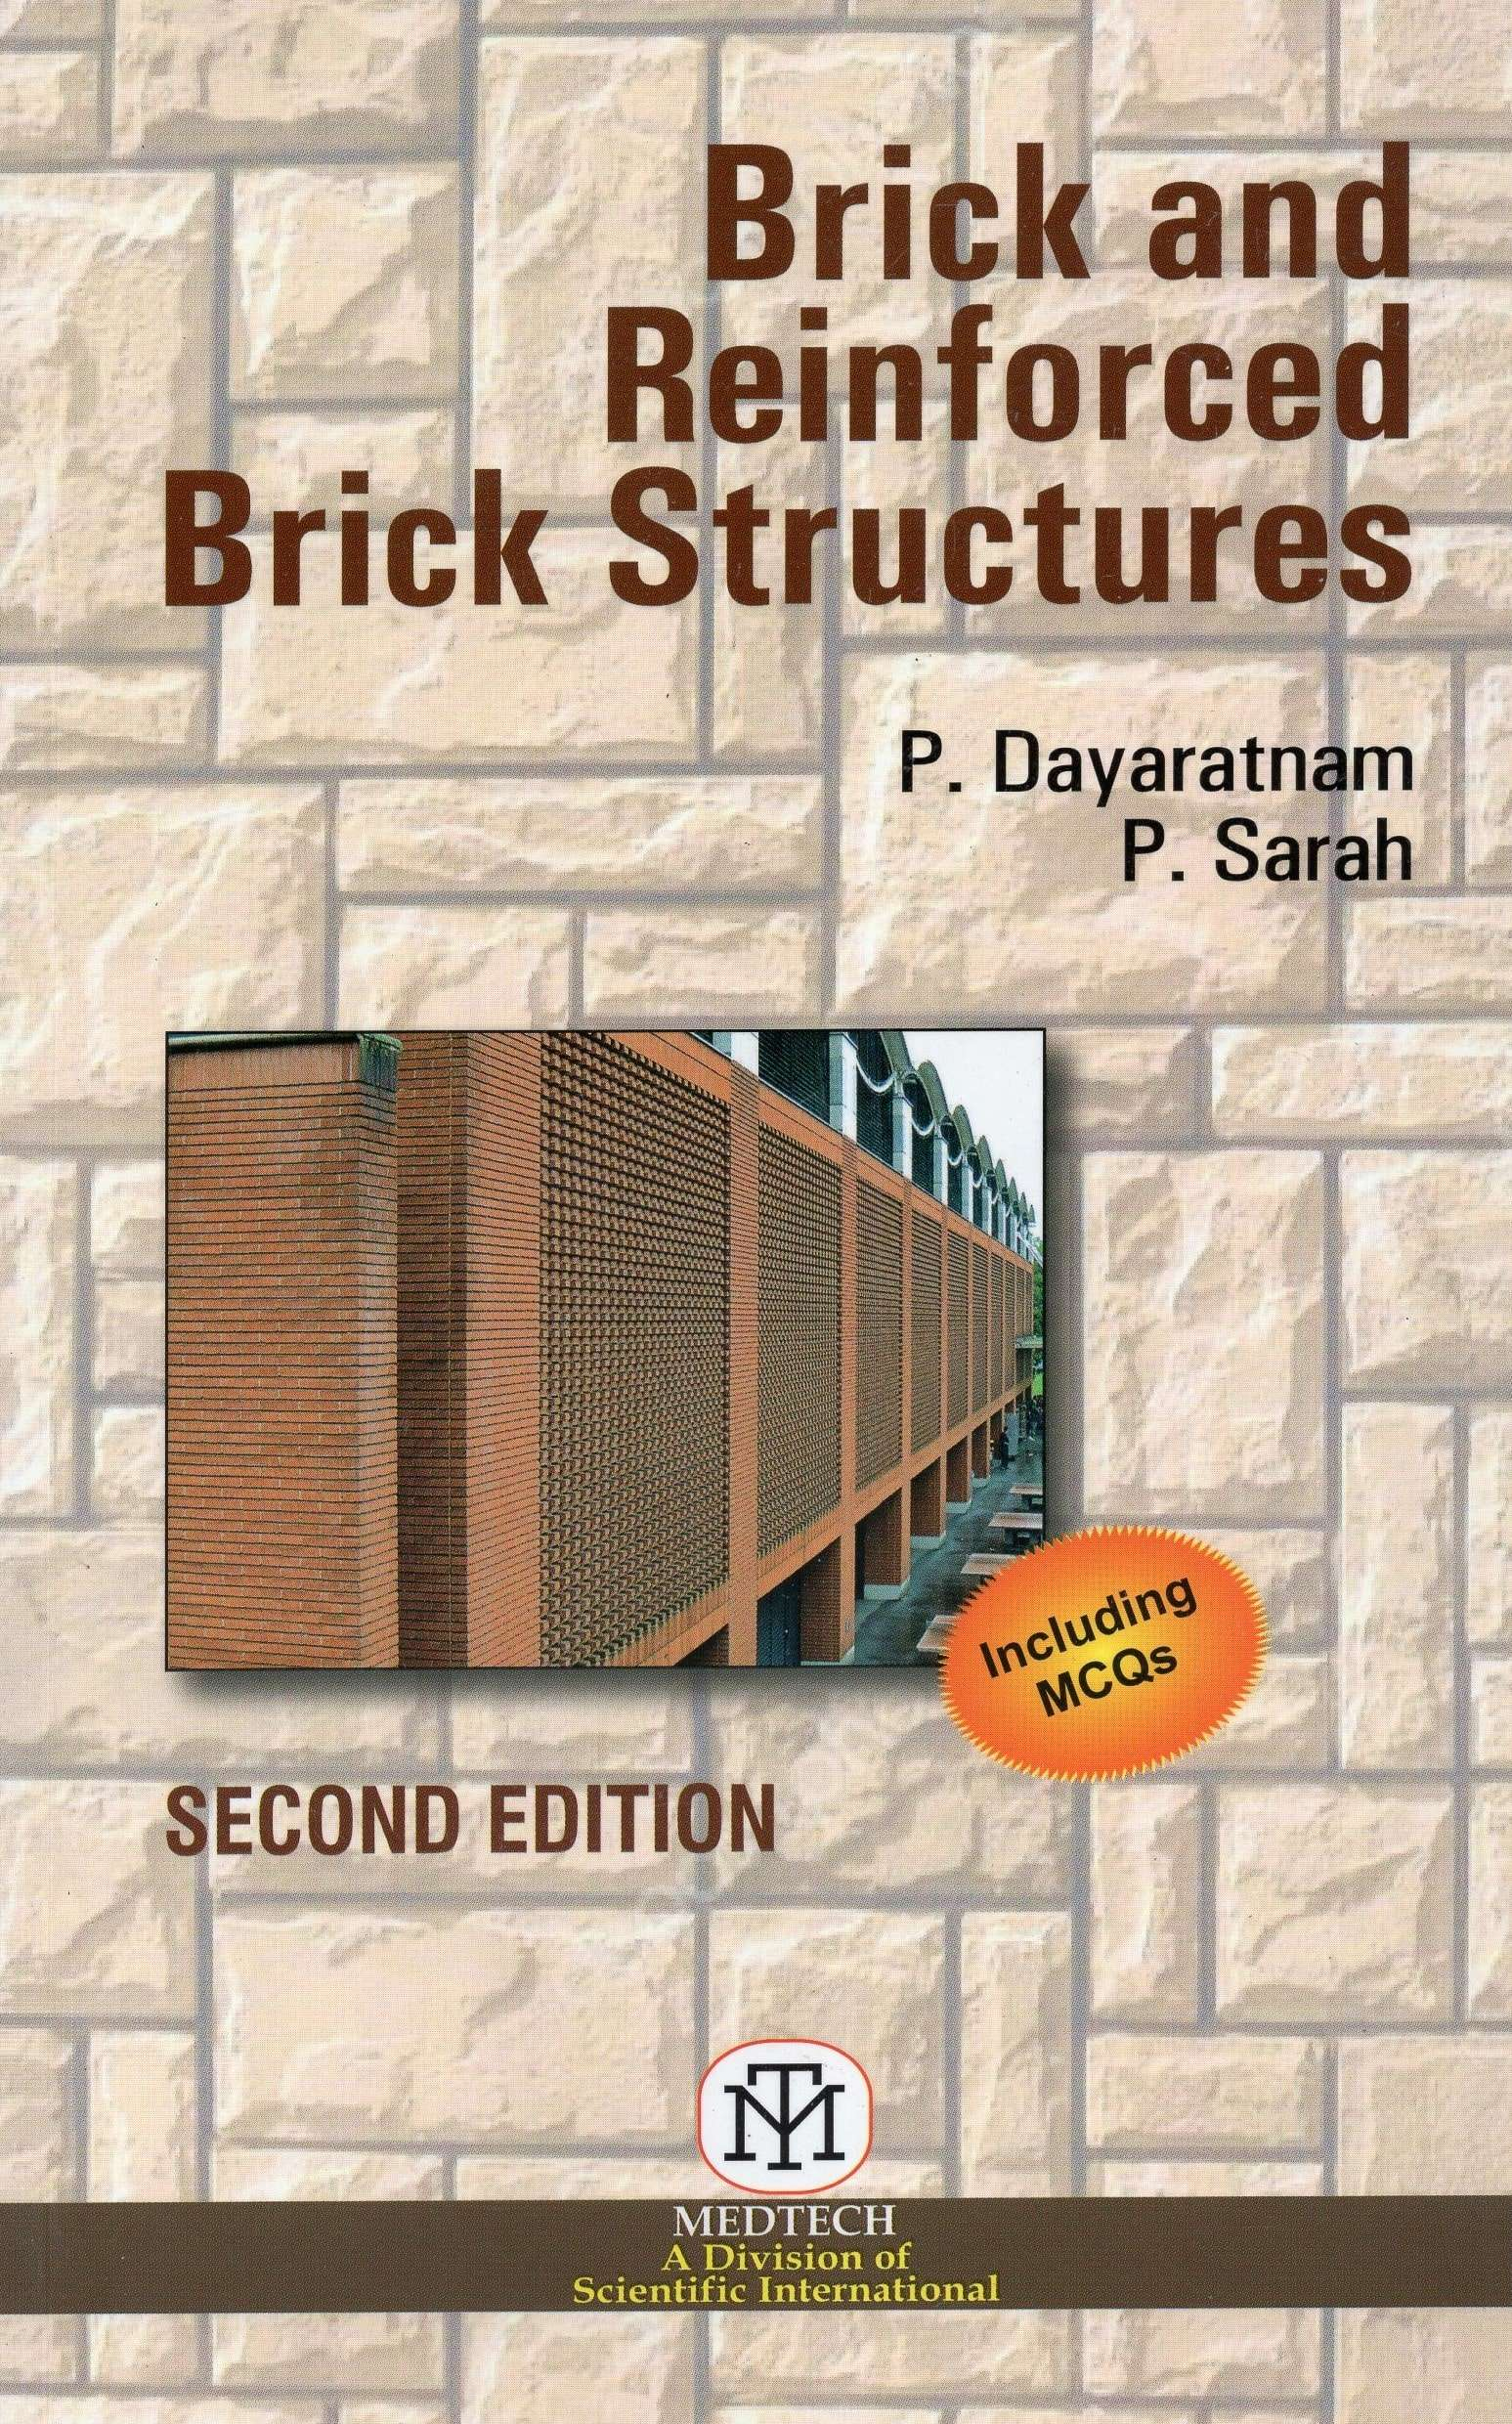 BRICK AND REINFORCED BRICK STRUCTURES